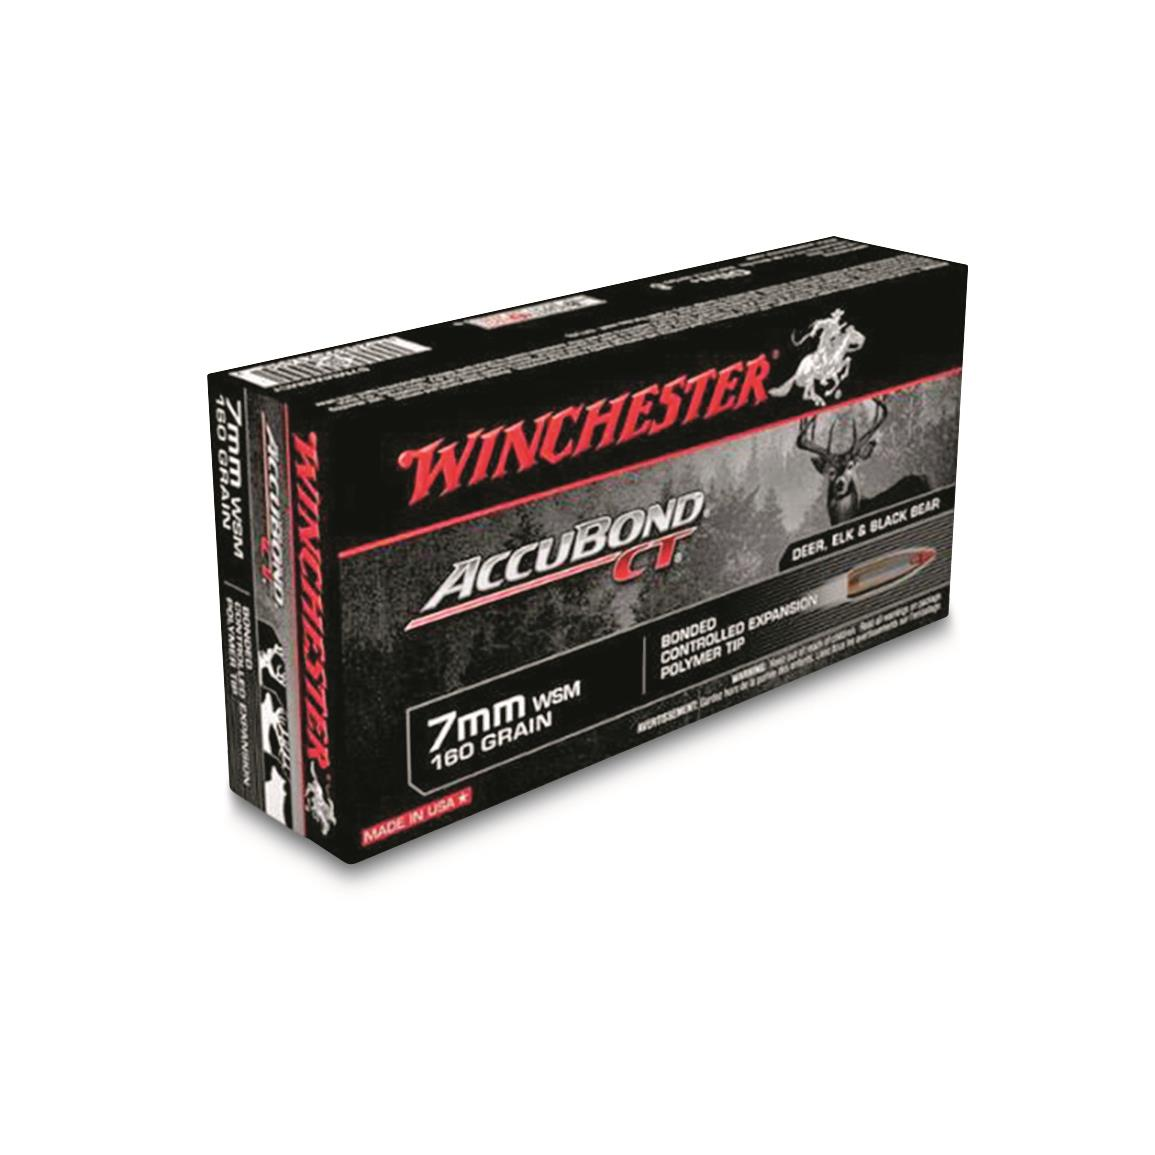 Winchester, AccuBond CT Rifle, 7mm, WSM, 160 Grain, 20 Rounds